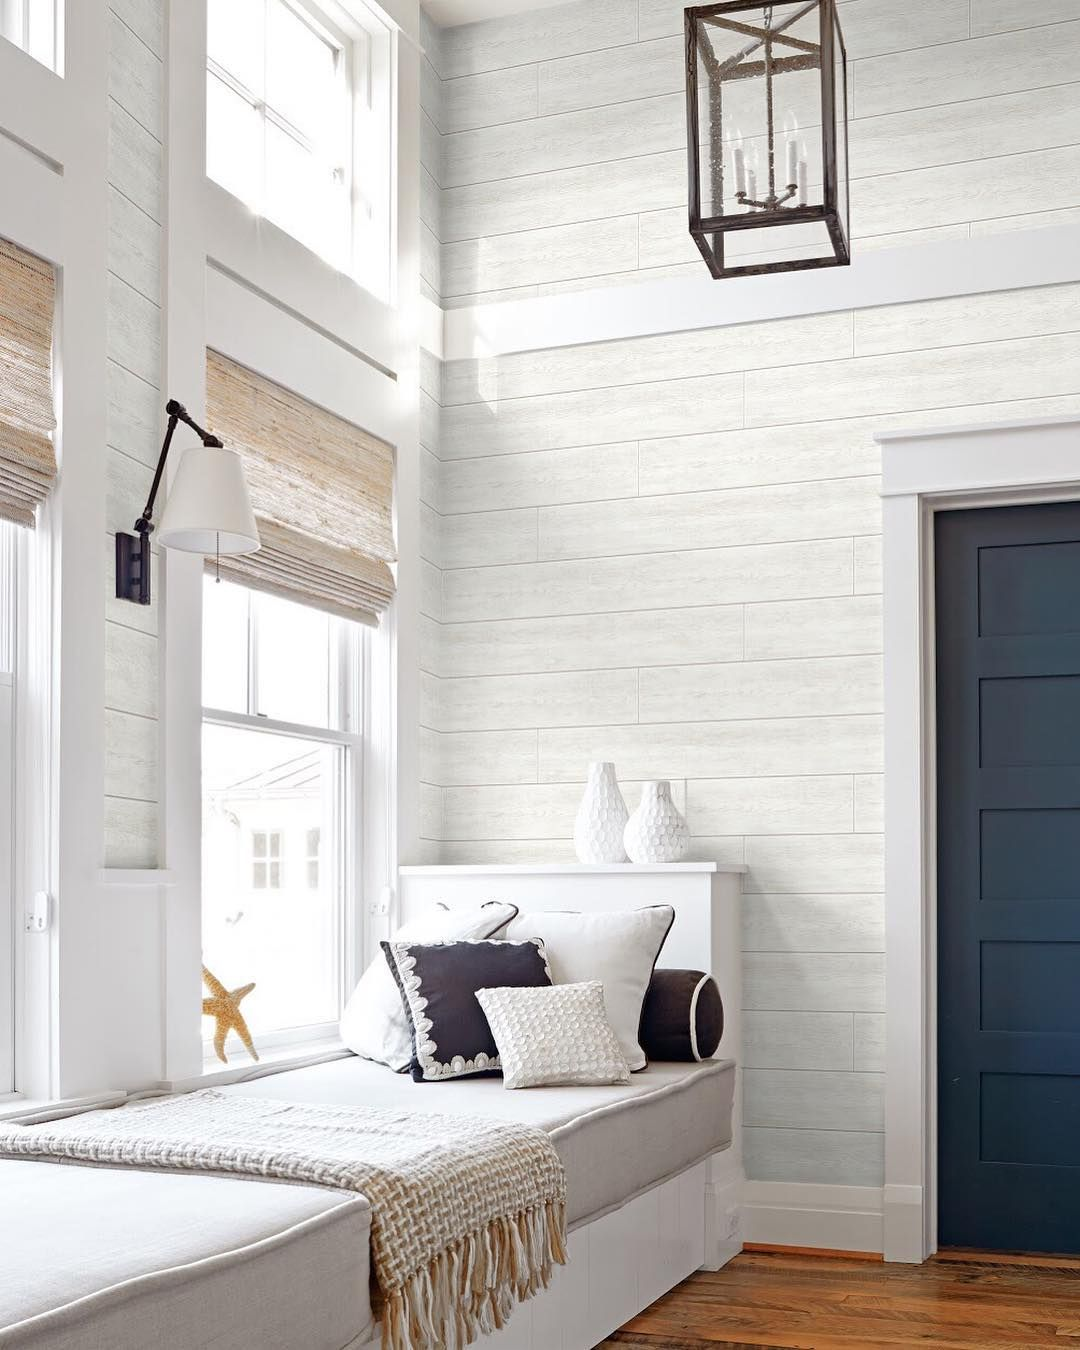 Say Decor On Instagram Shiplap Alert This Off White Shiplap Peel And Stick Pattern Will Bring A White Shiplap Peel And Stick Wallpaper Ship Lap Walls